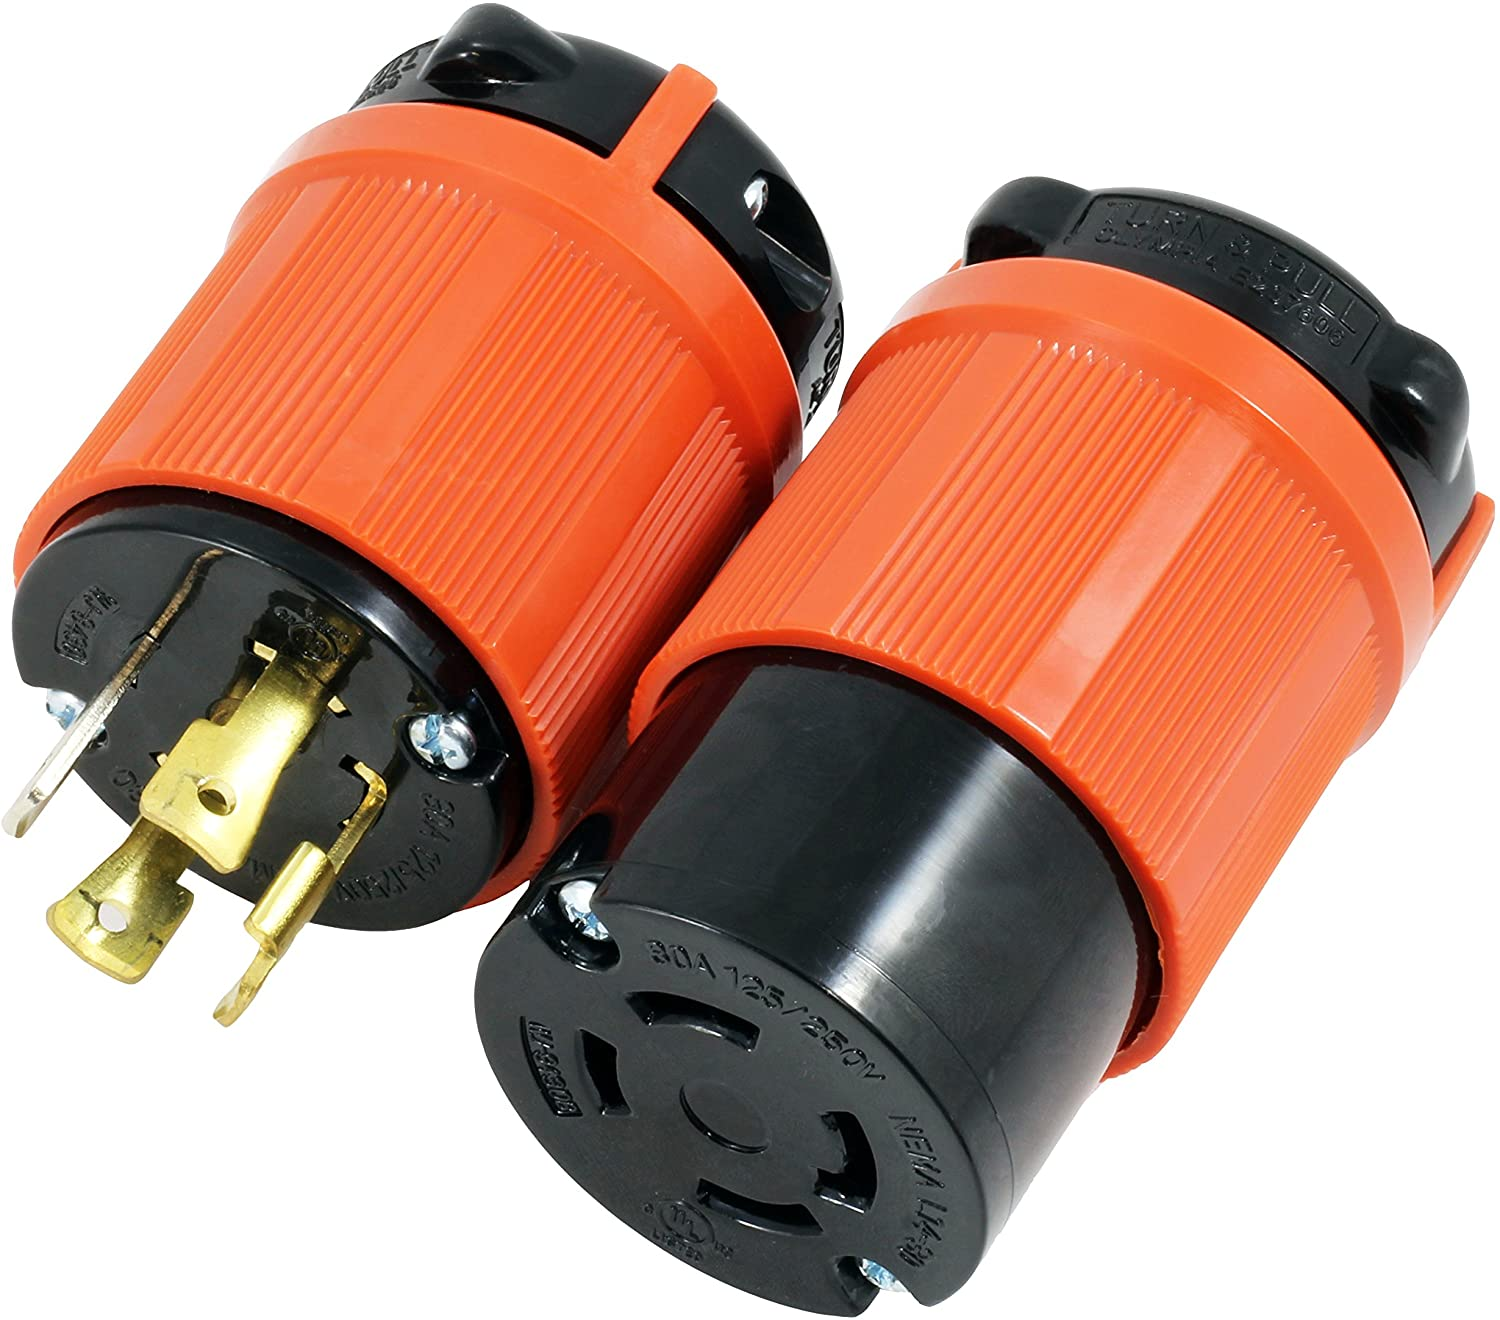 AC WORKS [ASL1430PR] NEMA L14-30 30Amp 125/250Volt 4Prong Locking Male Plug and Female Connector With UL, C-UL Approval